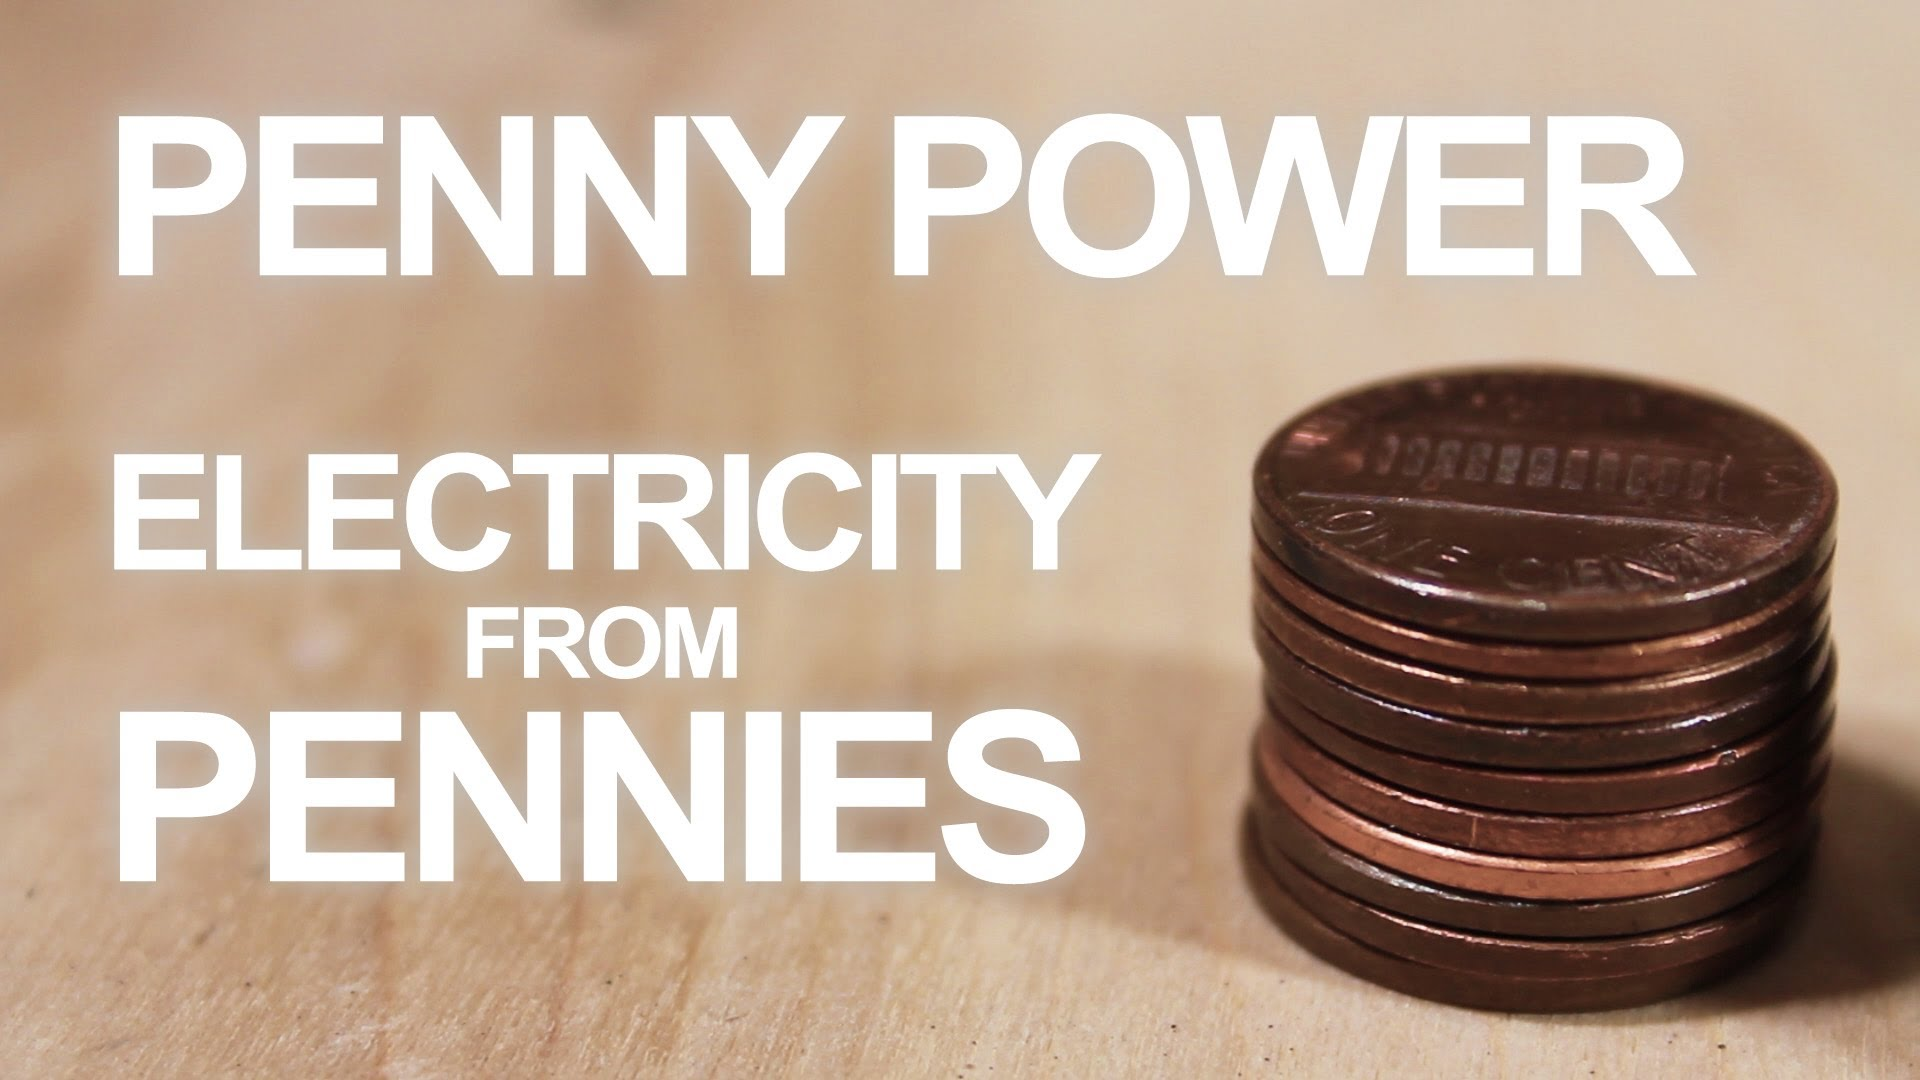 How To Make a 3 Penny Battery 3